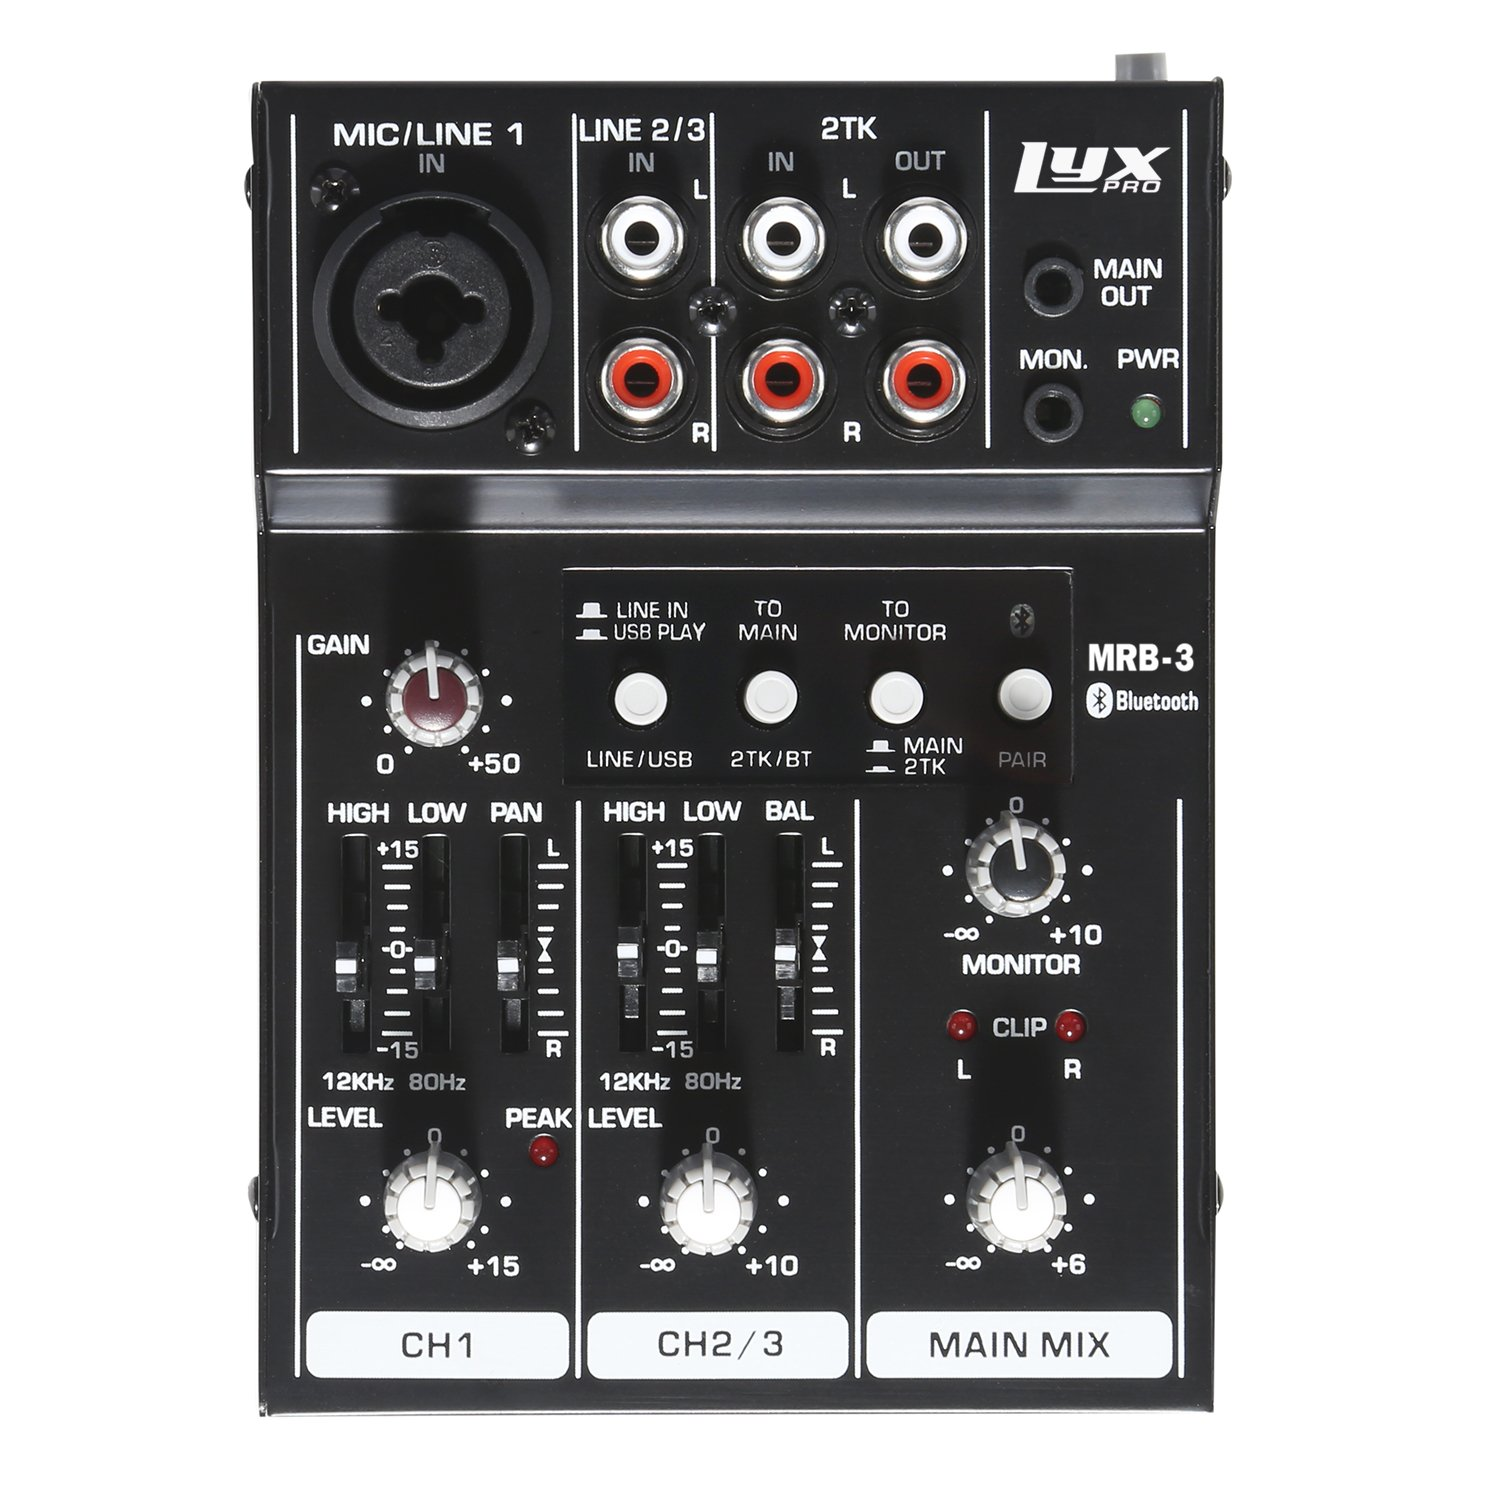 LyxPro MRB3 3-Channel Audio Mixer – Flexible, Compact Personal Pro Audio Mixer with USB & Bluetooth Connections by LyxPro (Image #2)